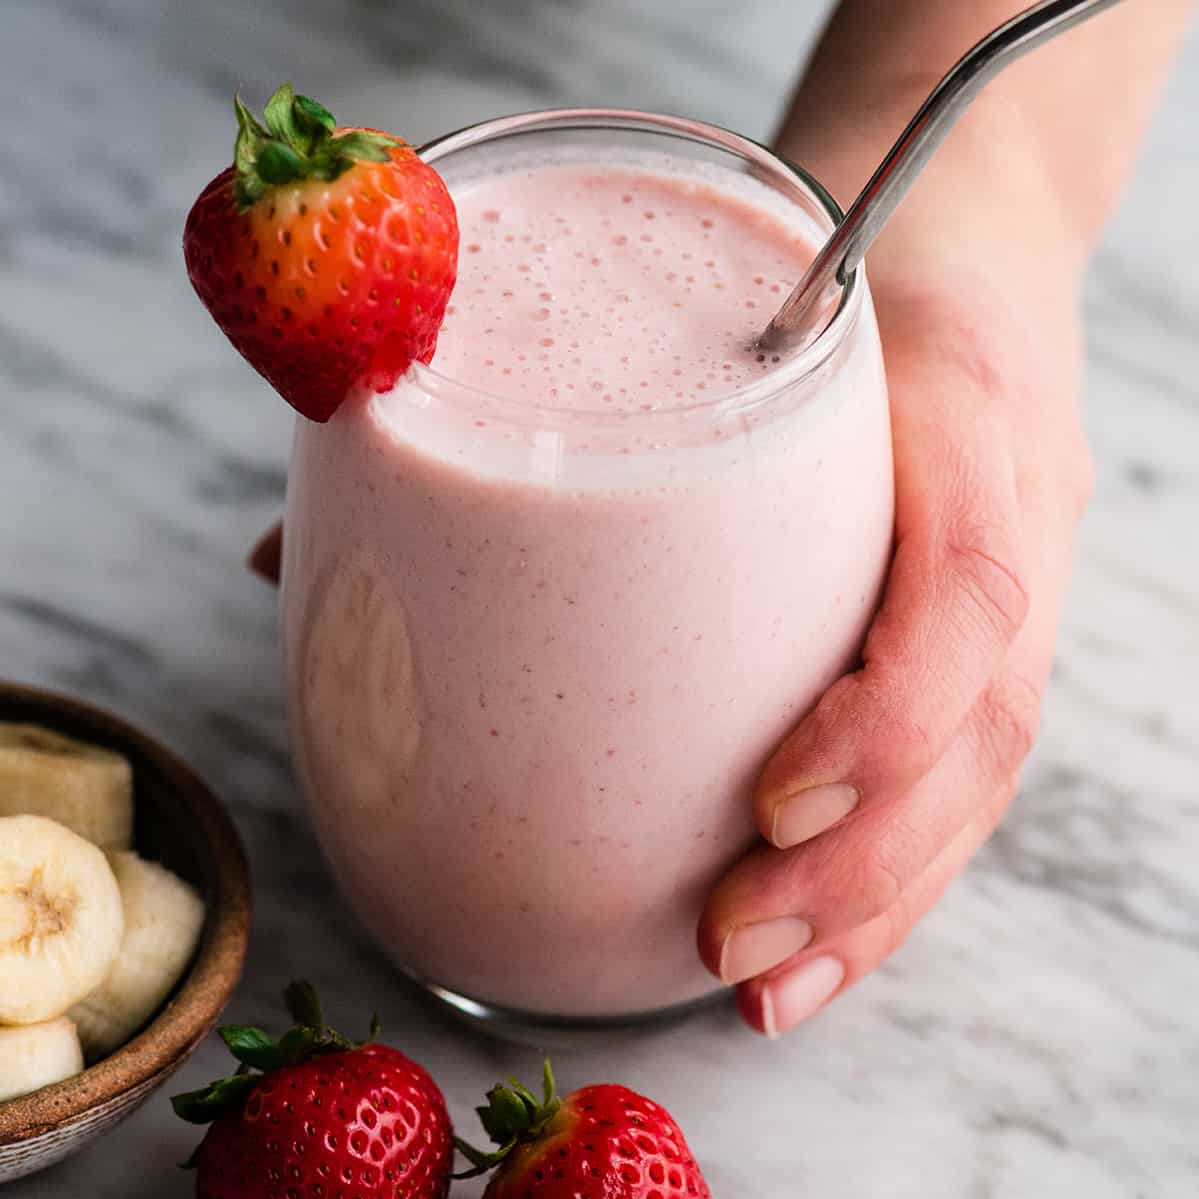 hand holding a glass filled with strawberry banana smoothie with a straw and strawberries.